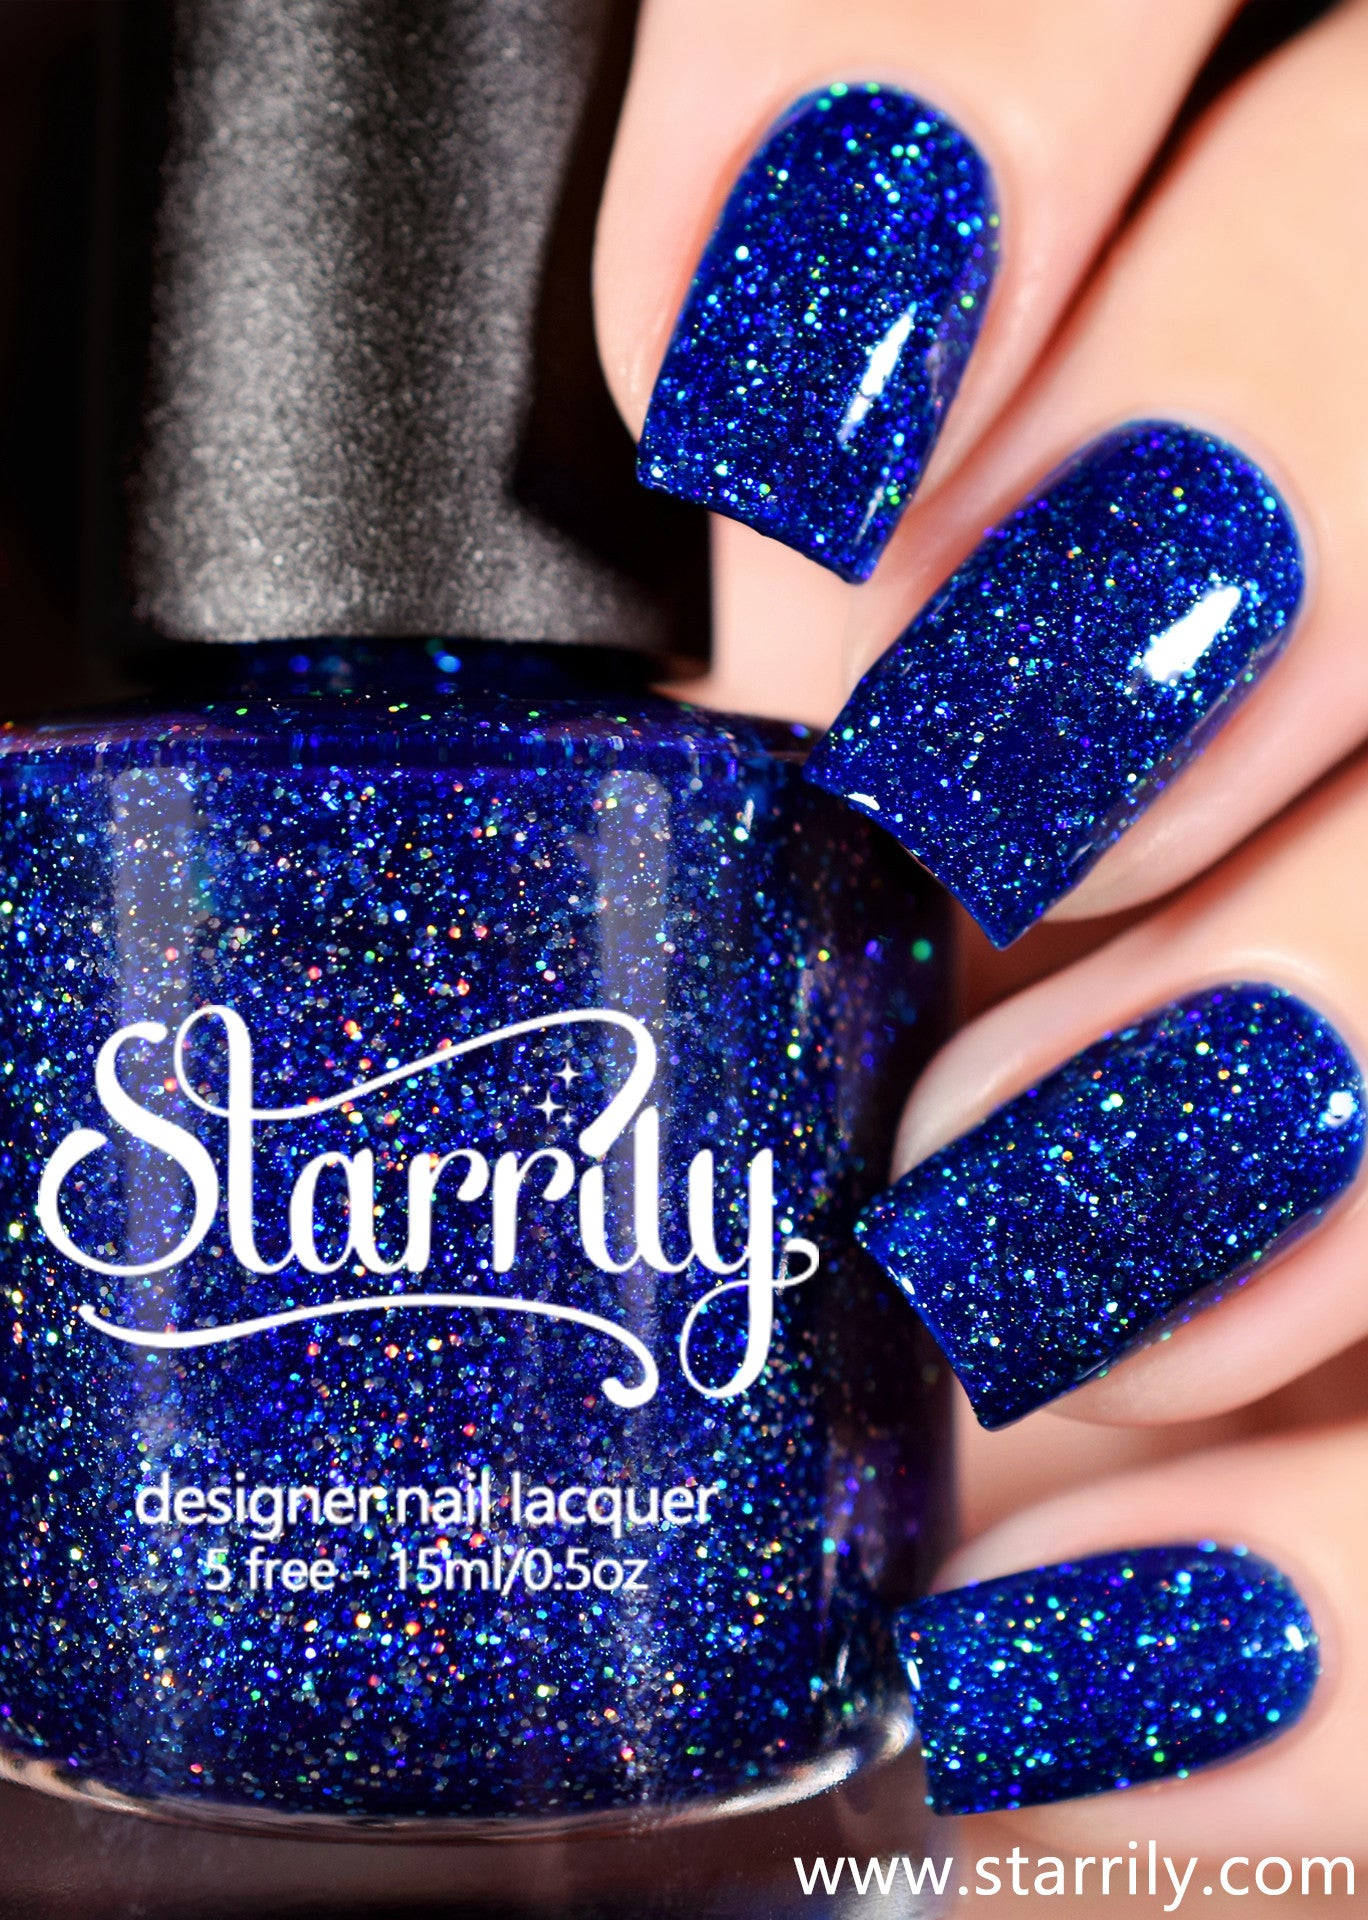 Starrily Bioluminescence - Rich sapphire blue with holographic glitter and a holo effect. High quality nail polish. Made in the USA! Cruelty Free and Vegan.